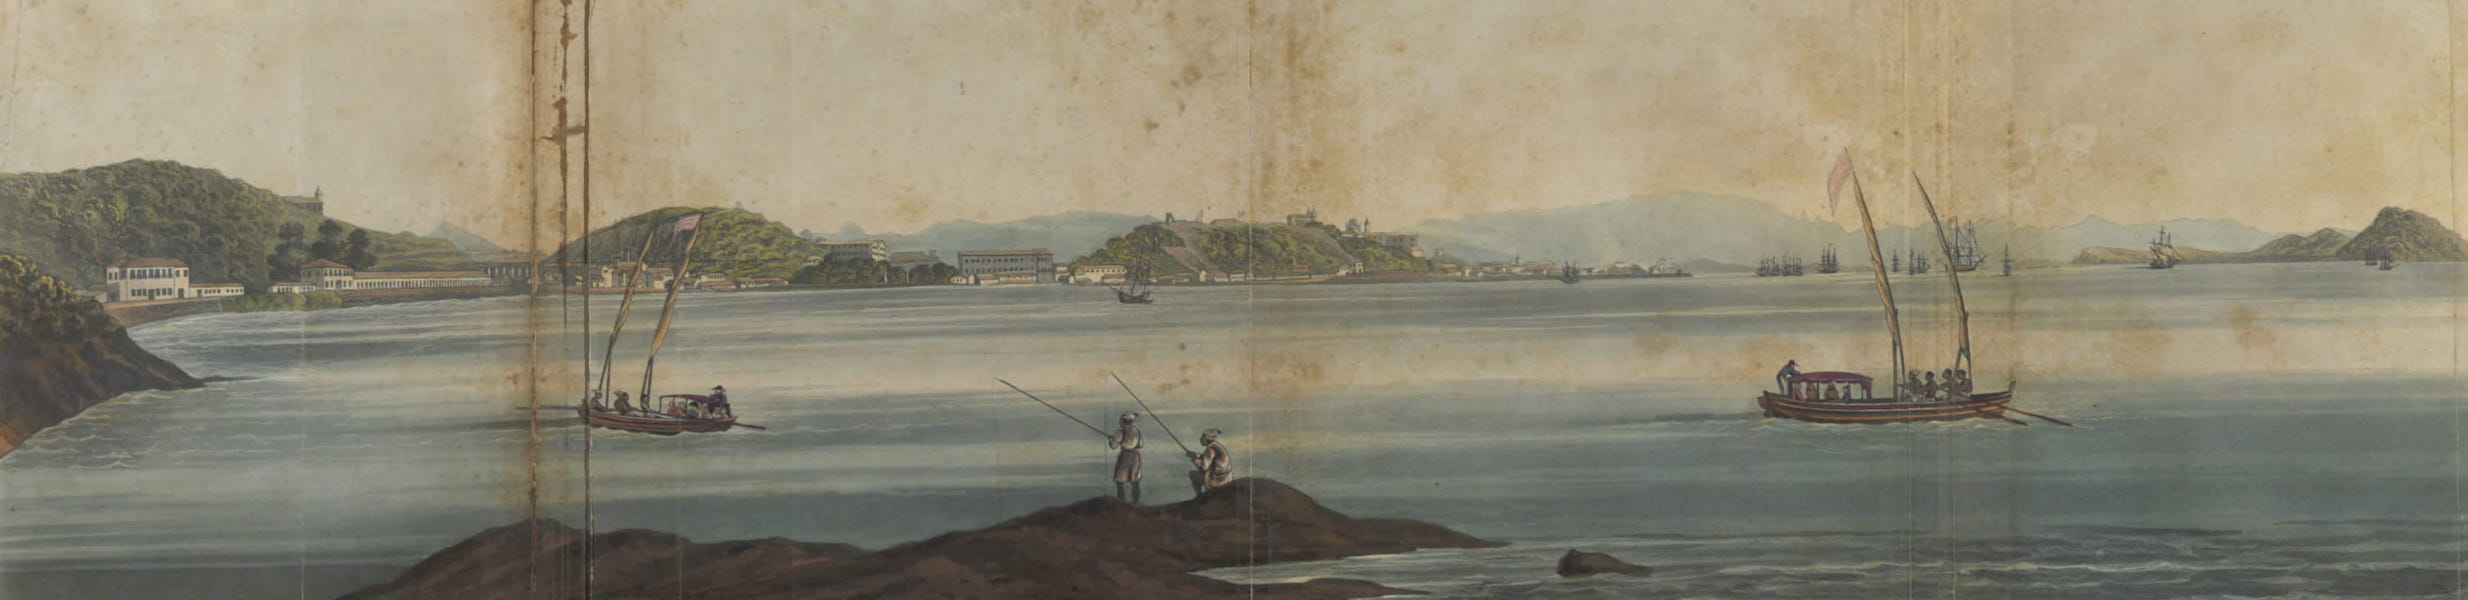 Views and Costumes of the City and Neighbourhood of Rio de Janeiro - Point of the Calhabouco from the Gloria (1822)